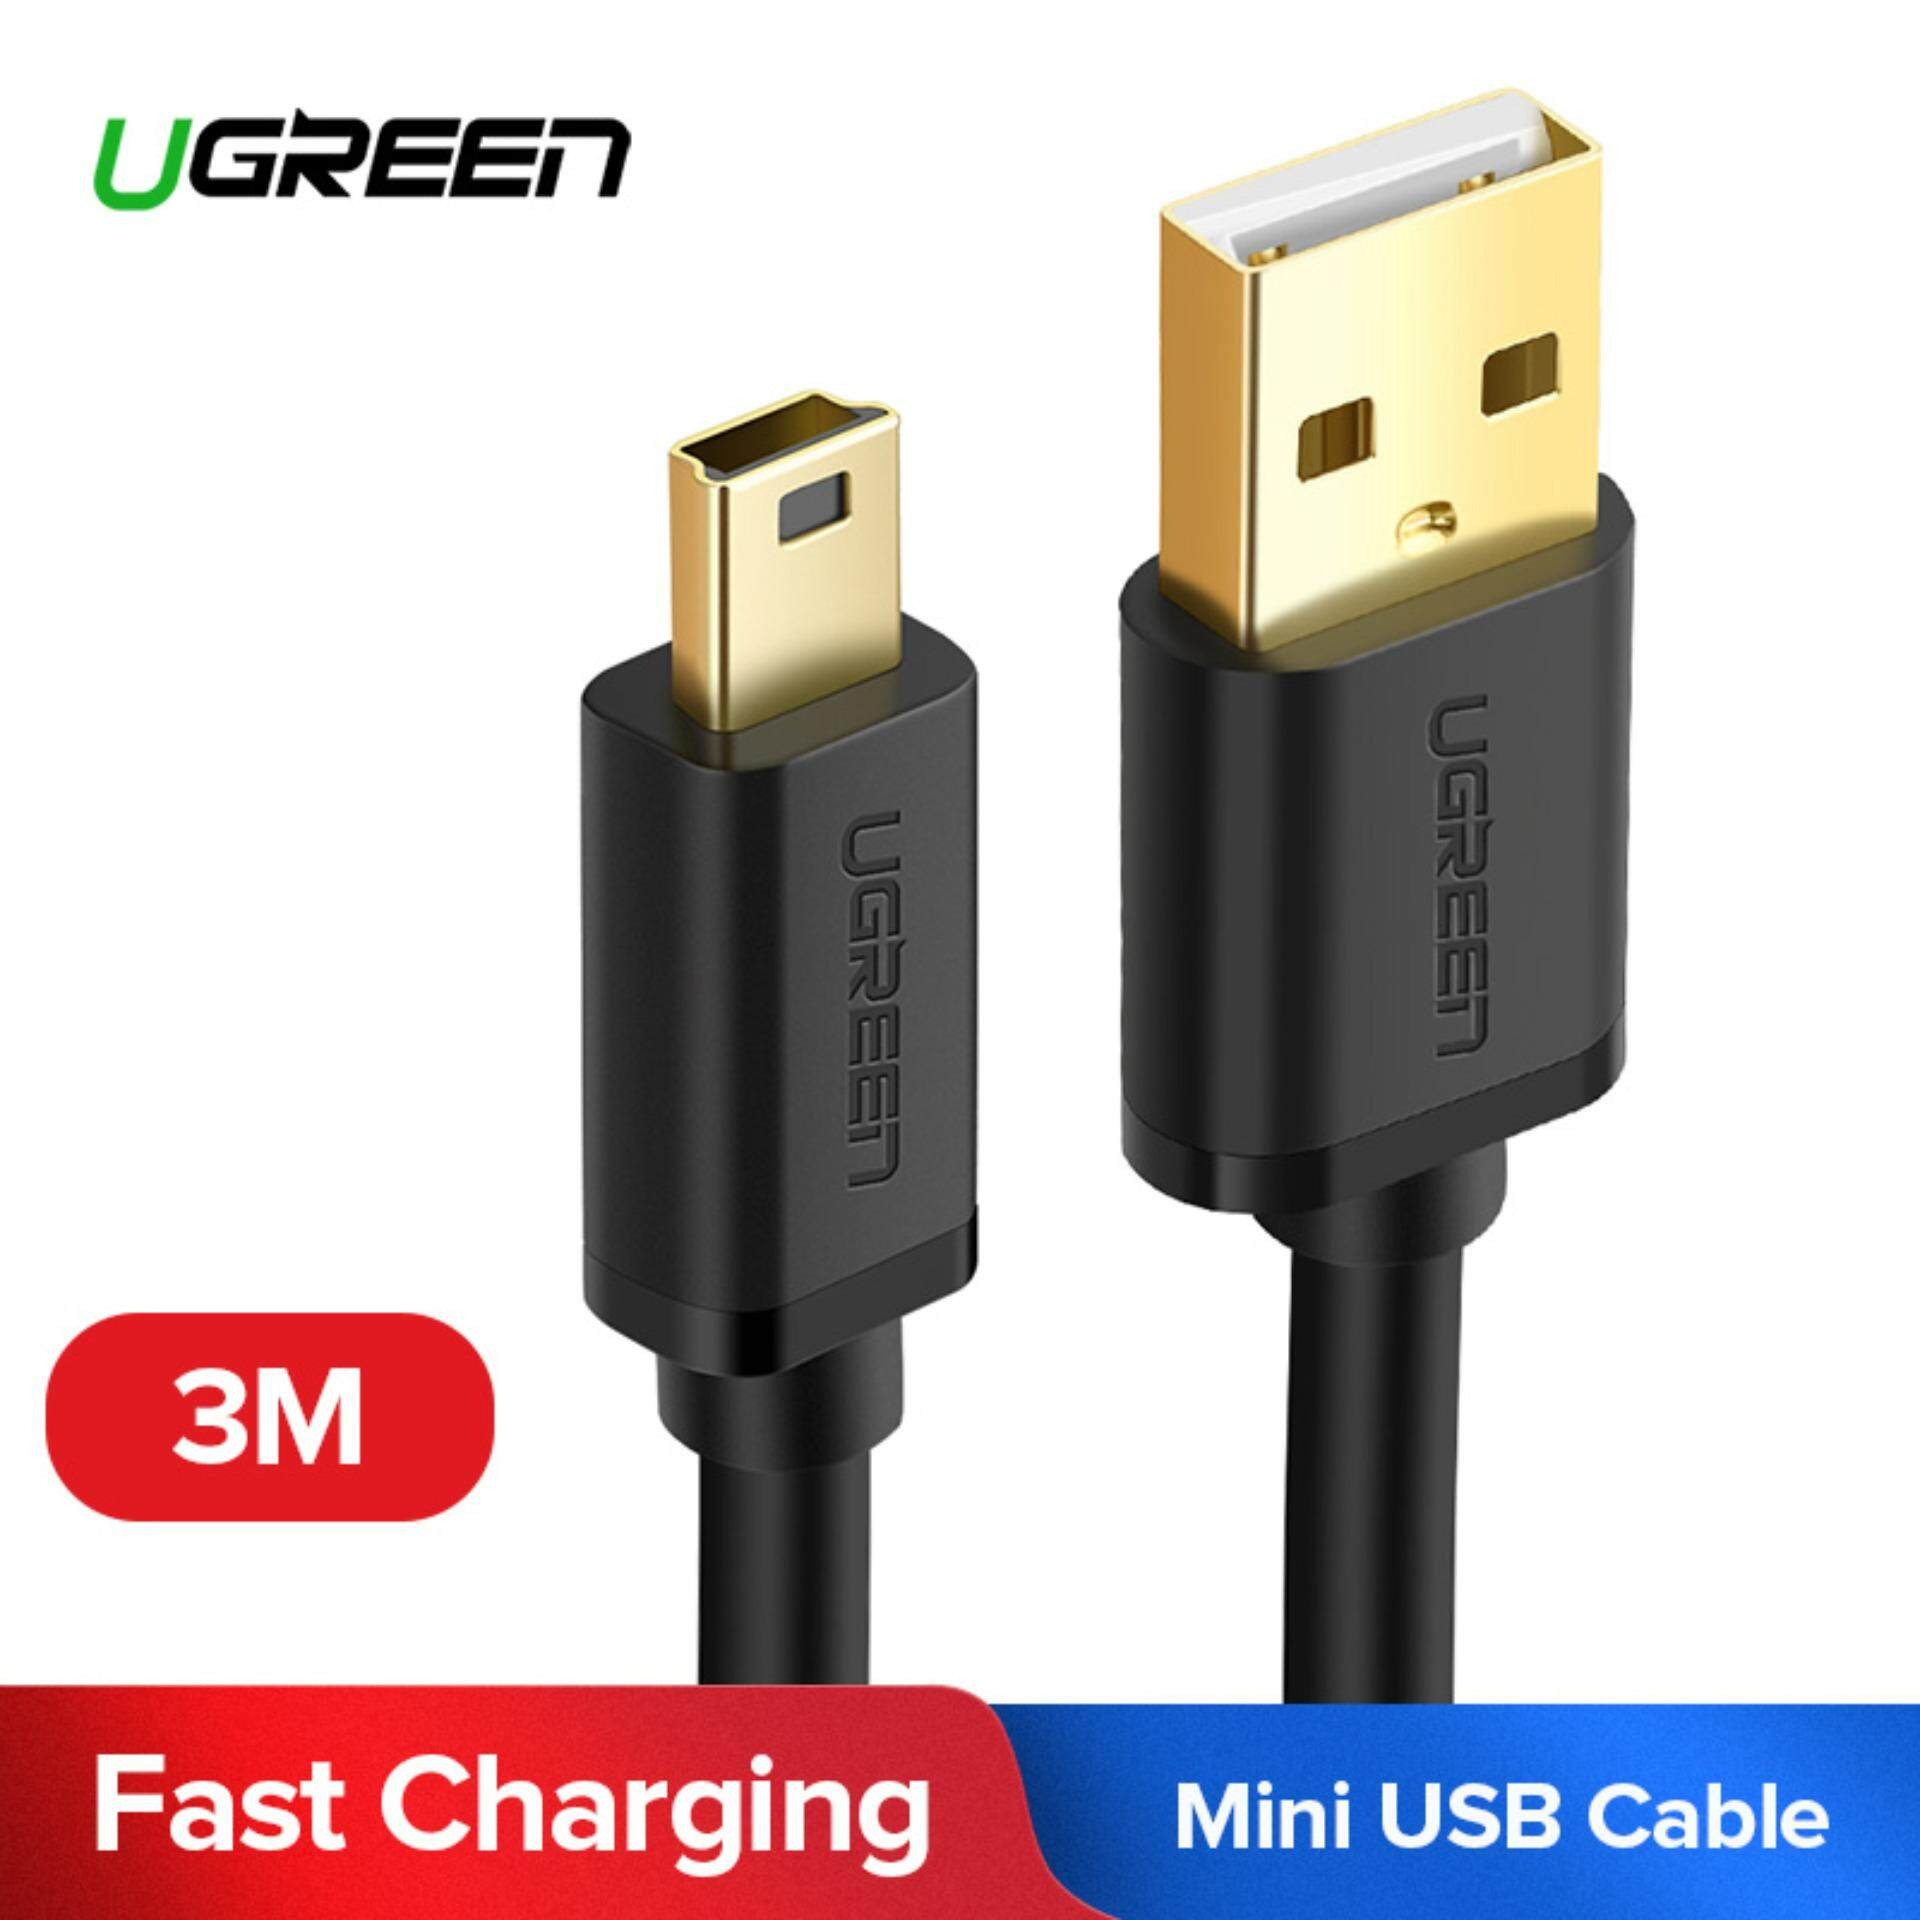 Ugreen 3 Meter Usb 2.0 A Male To 5-Pin Mini B Fast Data Charger Cable For Mp3 Mp4 Players Tablets Gopro-Hd Hero2-Hero3+-Hero4 Gps Digital Camera Hdd (3m) By Ugreen Flagship Store.